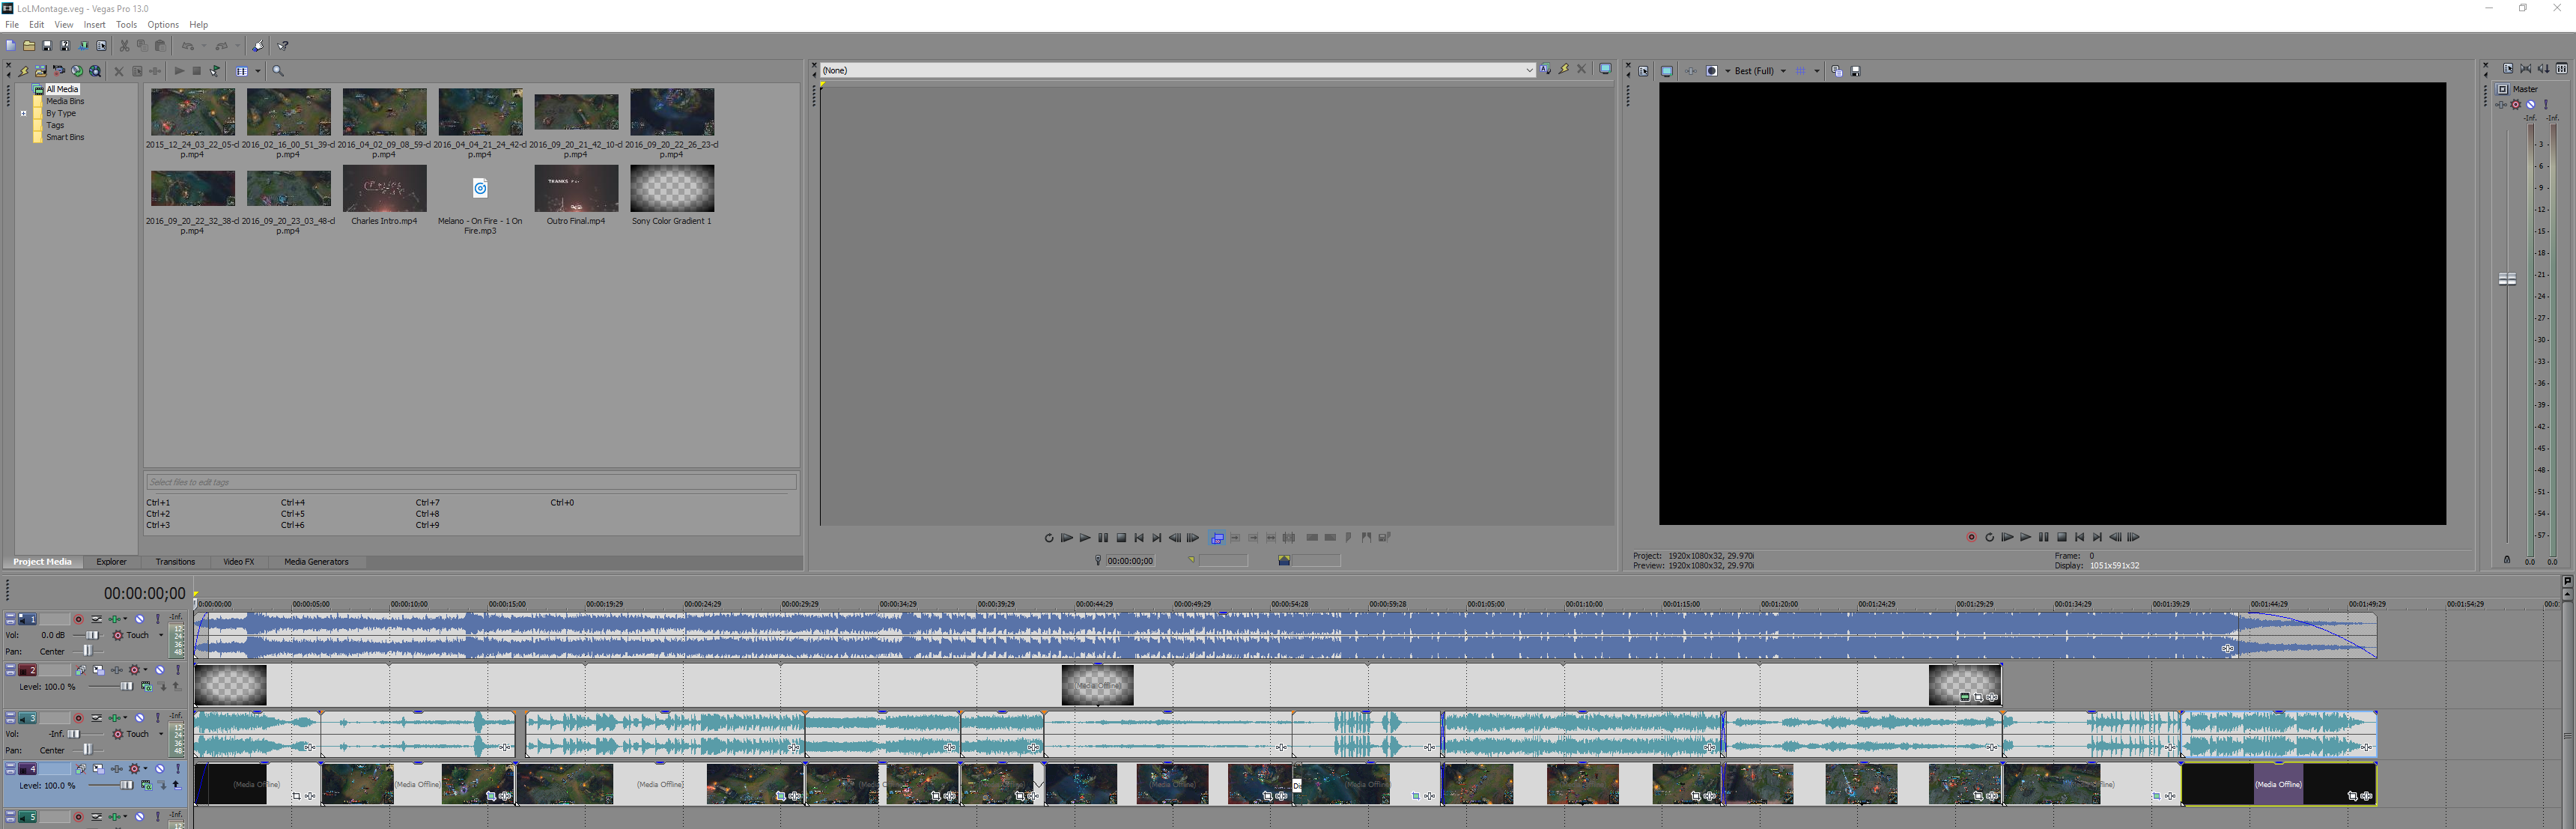 a print screen of the sony vegas pro interface.